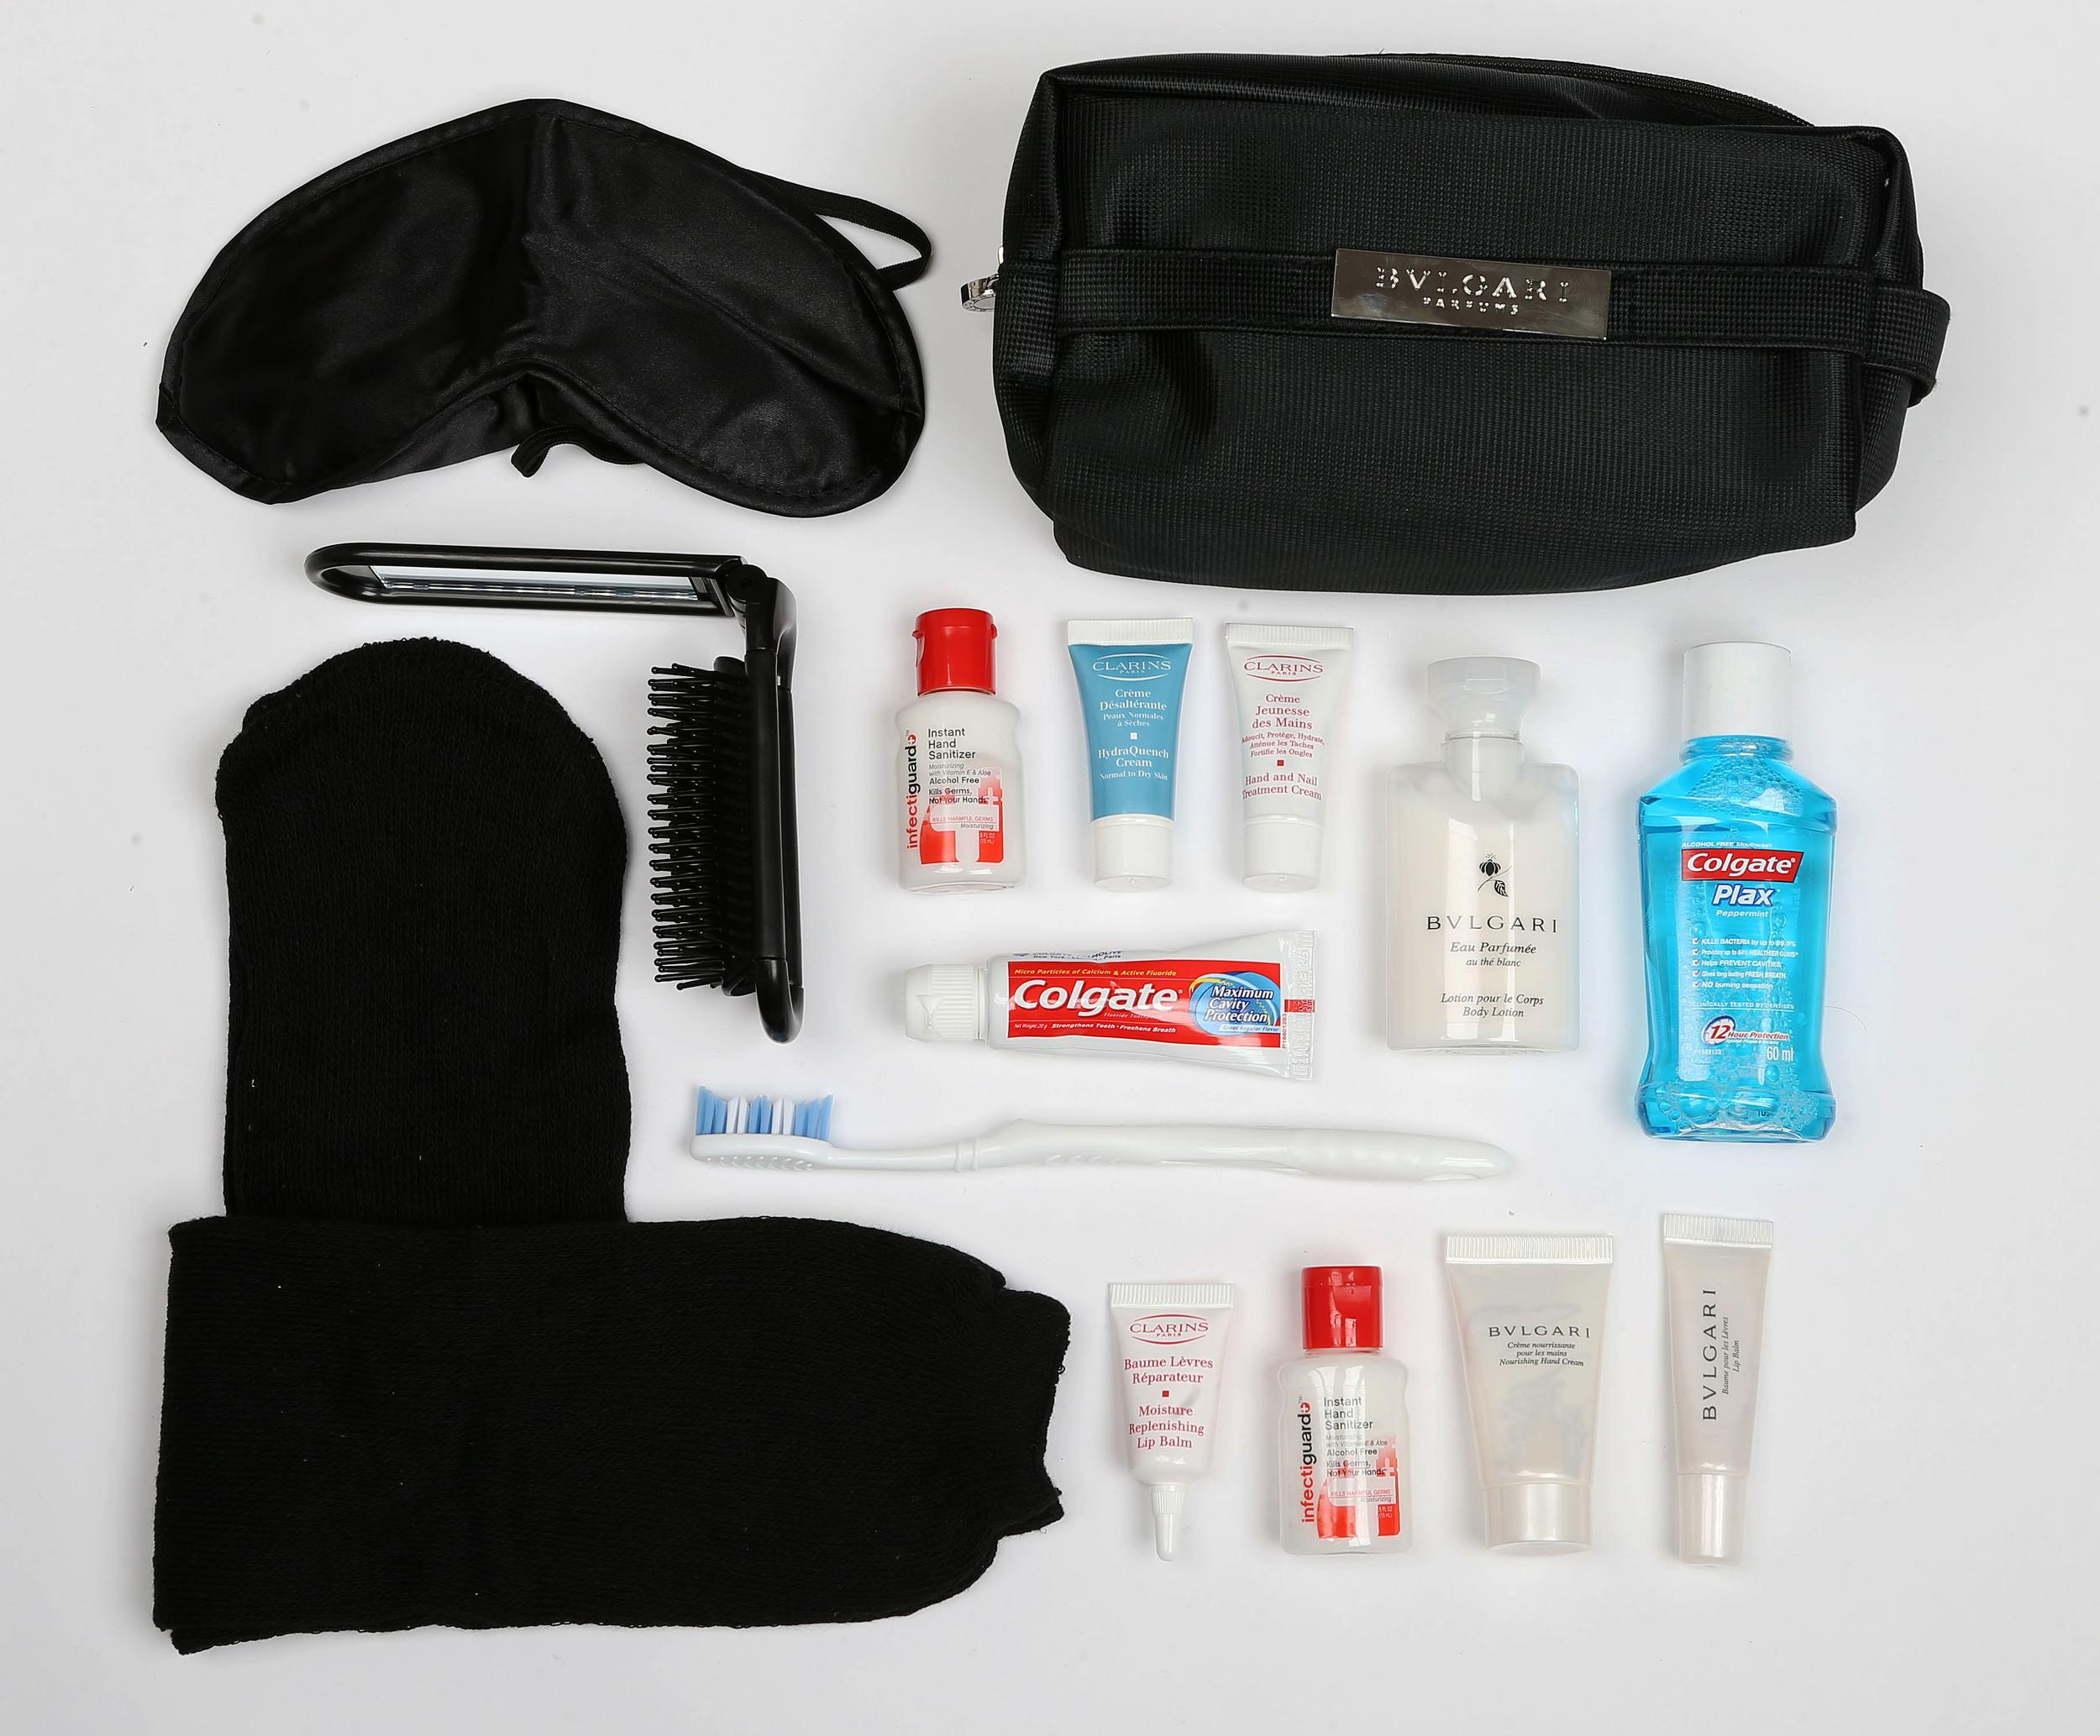 <p><strong>What do you get?</strong> First class: Bulgari products (nourishing hand cream, body lotion and lip balm), eye mask, socks, foldable brush with a pocket mirror, alcohol-free hand sanitiser, toothbrush, toothpaste, mouthwash<br /> Business Class: Eye mask, socks, foldable brush with pocket mirror, hand sanitiser, toothbrush, toothpaste, Clarins' moisture replenishing lip balm, hand and nail treatment cream and hydra quench cream.<br /> <strong>Best bit of the kit?</strong> It's got to be the Bulgari products, although the hand sanitiser is a winner. It feels more like a hand lotion than the sticky germ destroyer we are used to and we much prefer its alcohol-free formula.</p>